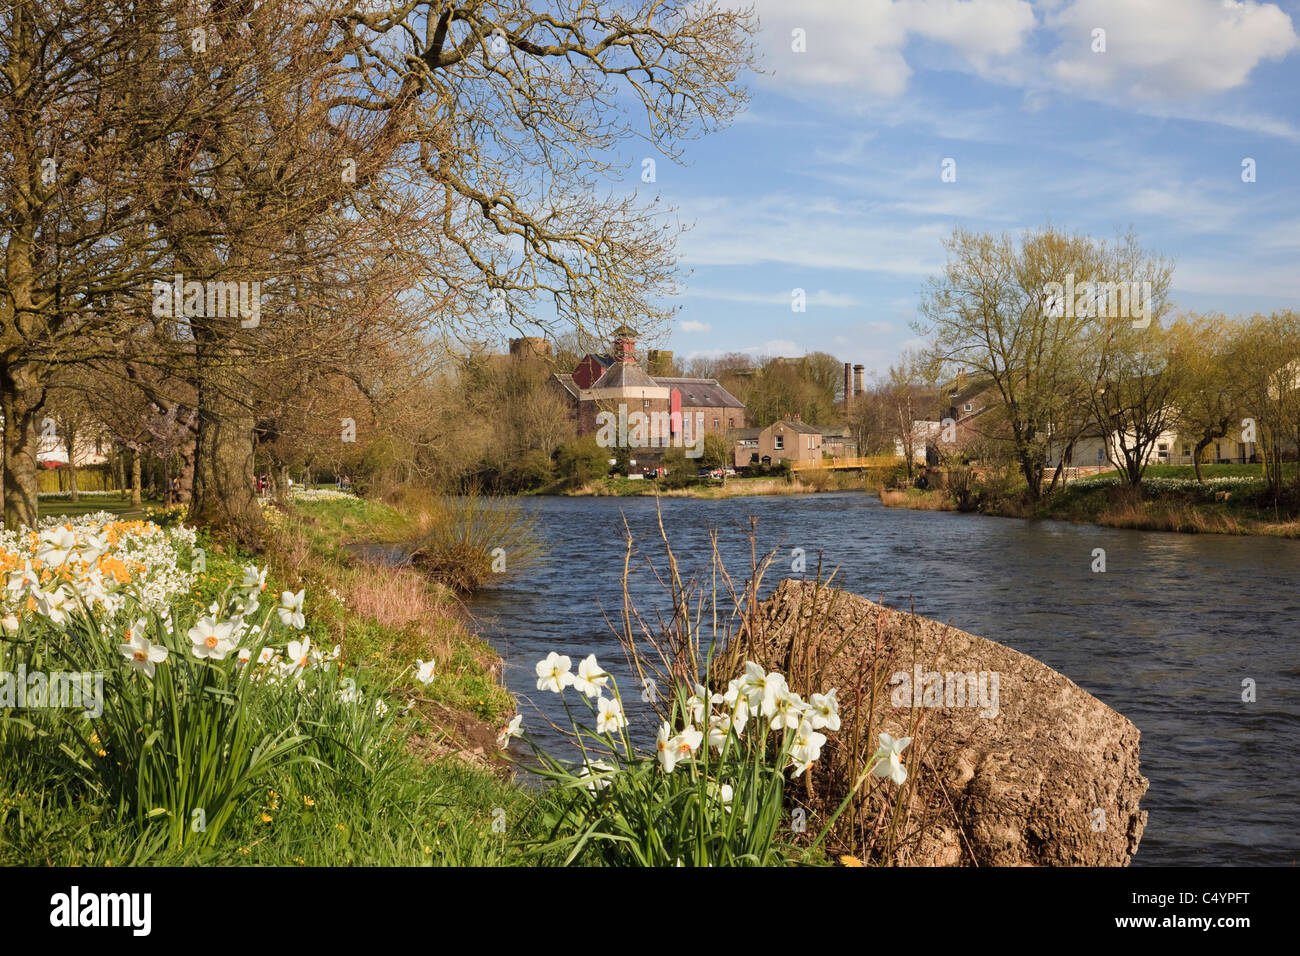 Spring Daffodils in the Memorial Gardens beside the River Derwent in Cockermouth, Allerdale, Cumbria, England, UK, - Stock Image